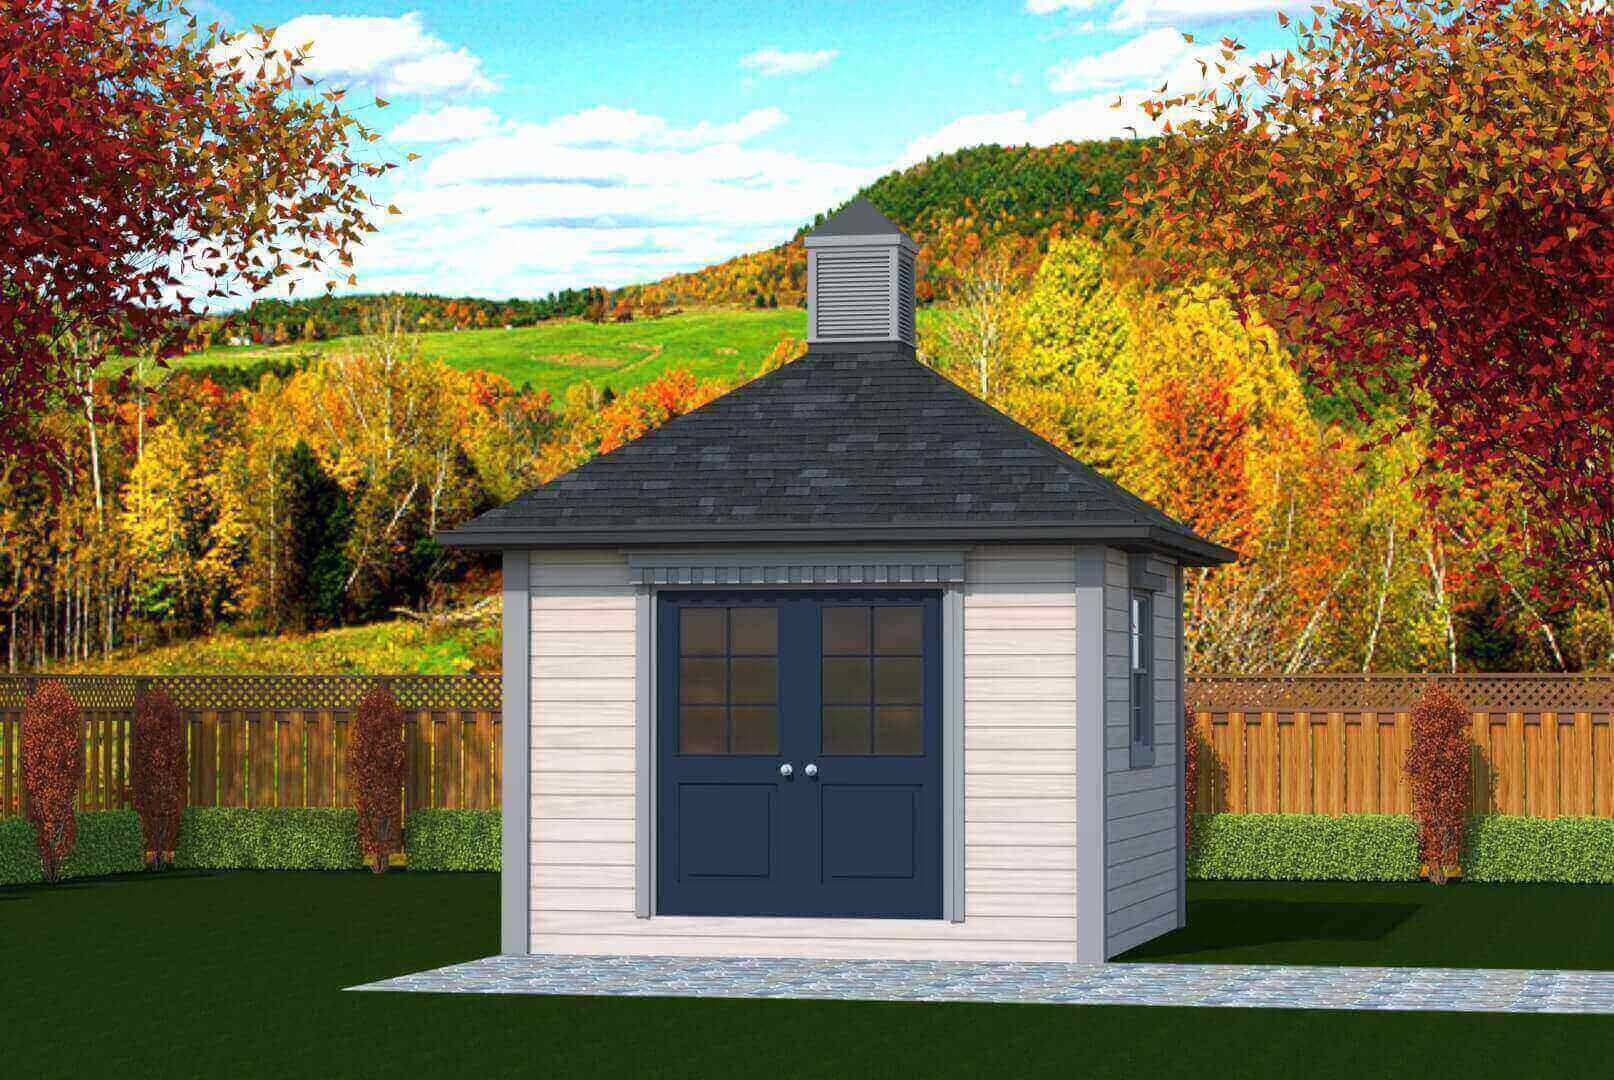 144 sq.ft. timber mart shed with french door and window